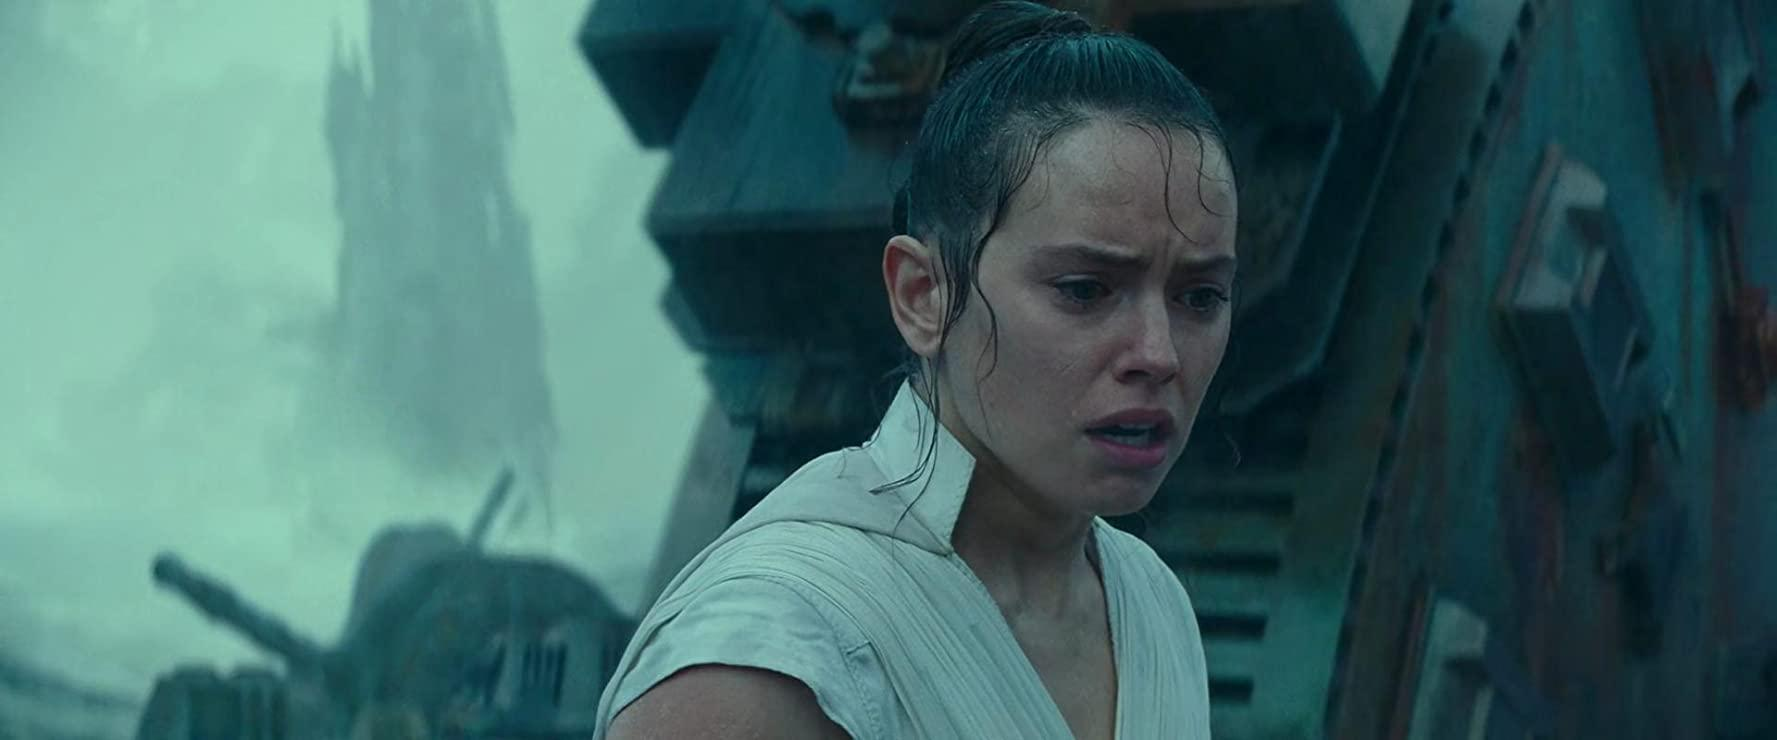 Rise Of Skywalker This Is When The Star Wars Movie Will Be Released On Disney Plus Uk And When You Can Buy It On Dvd Yorkshire Evening Post